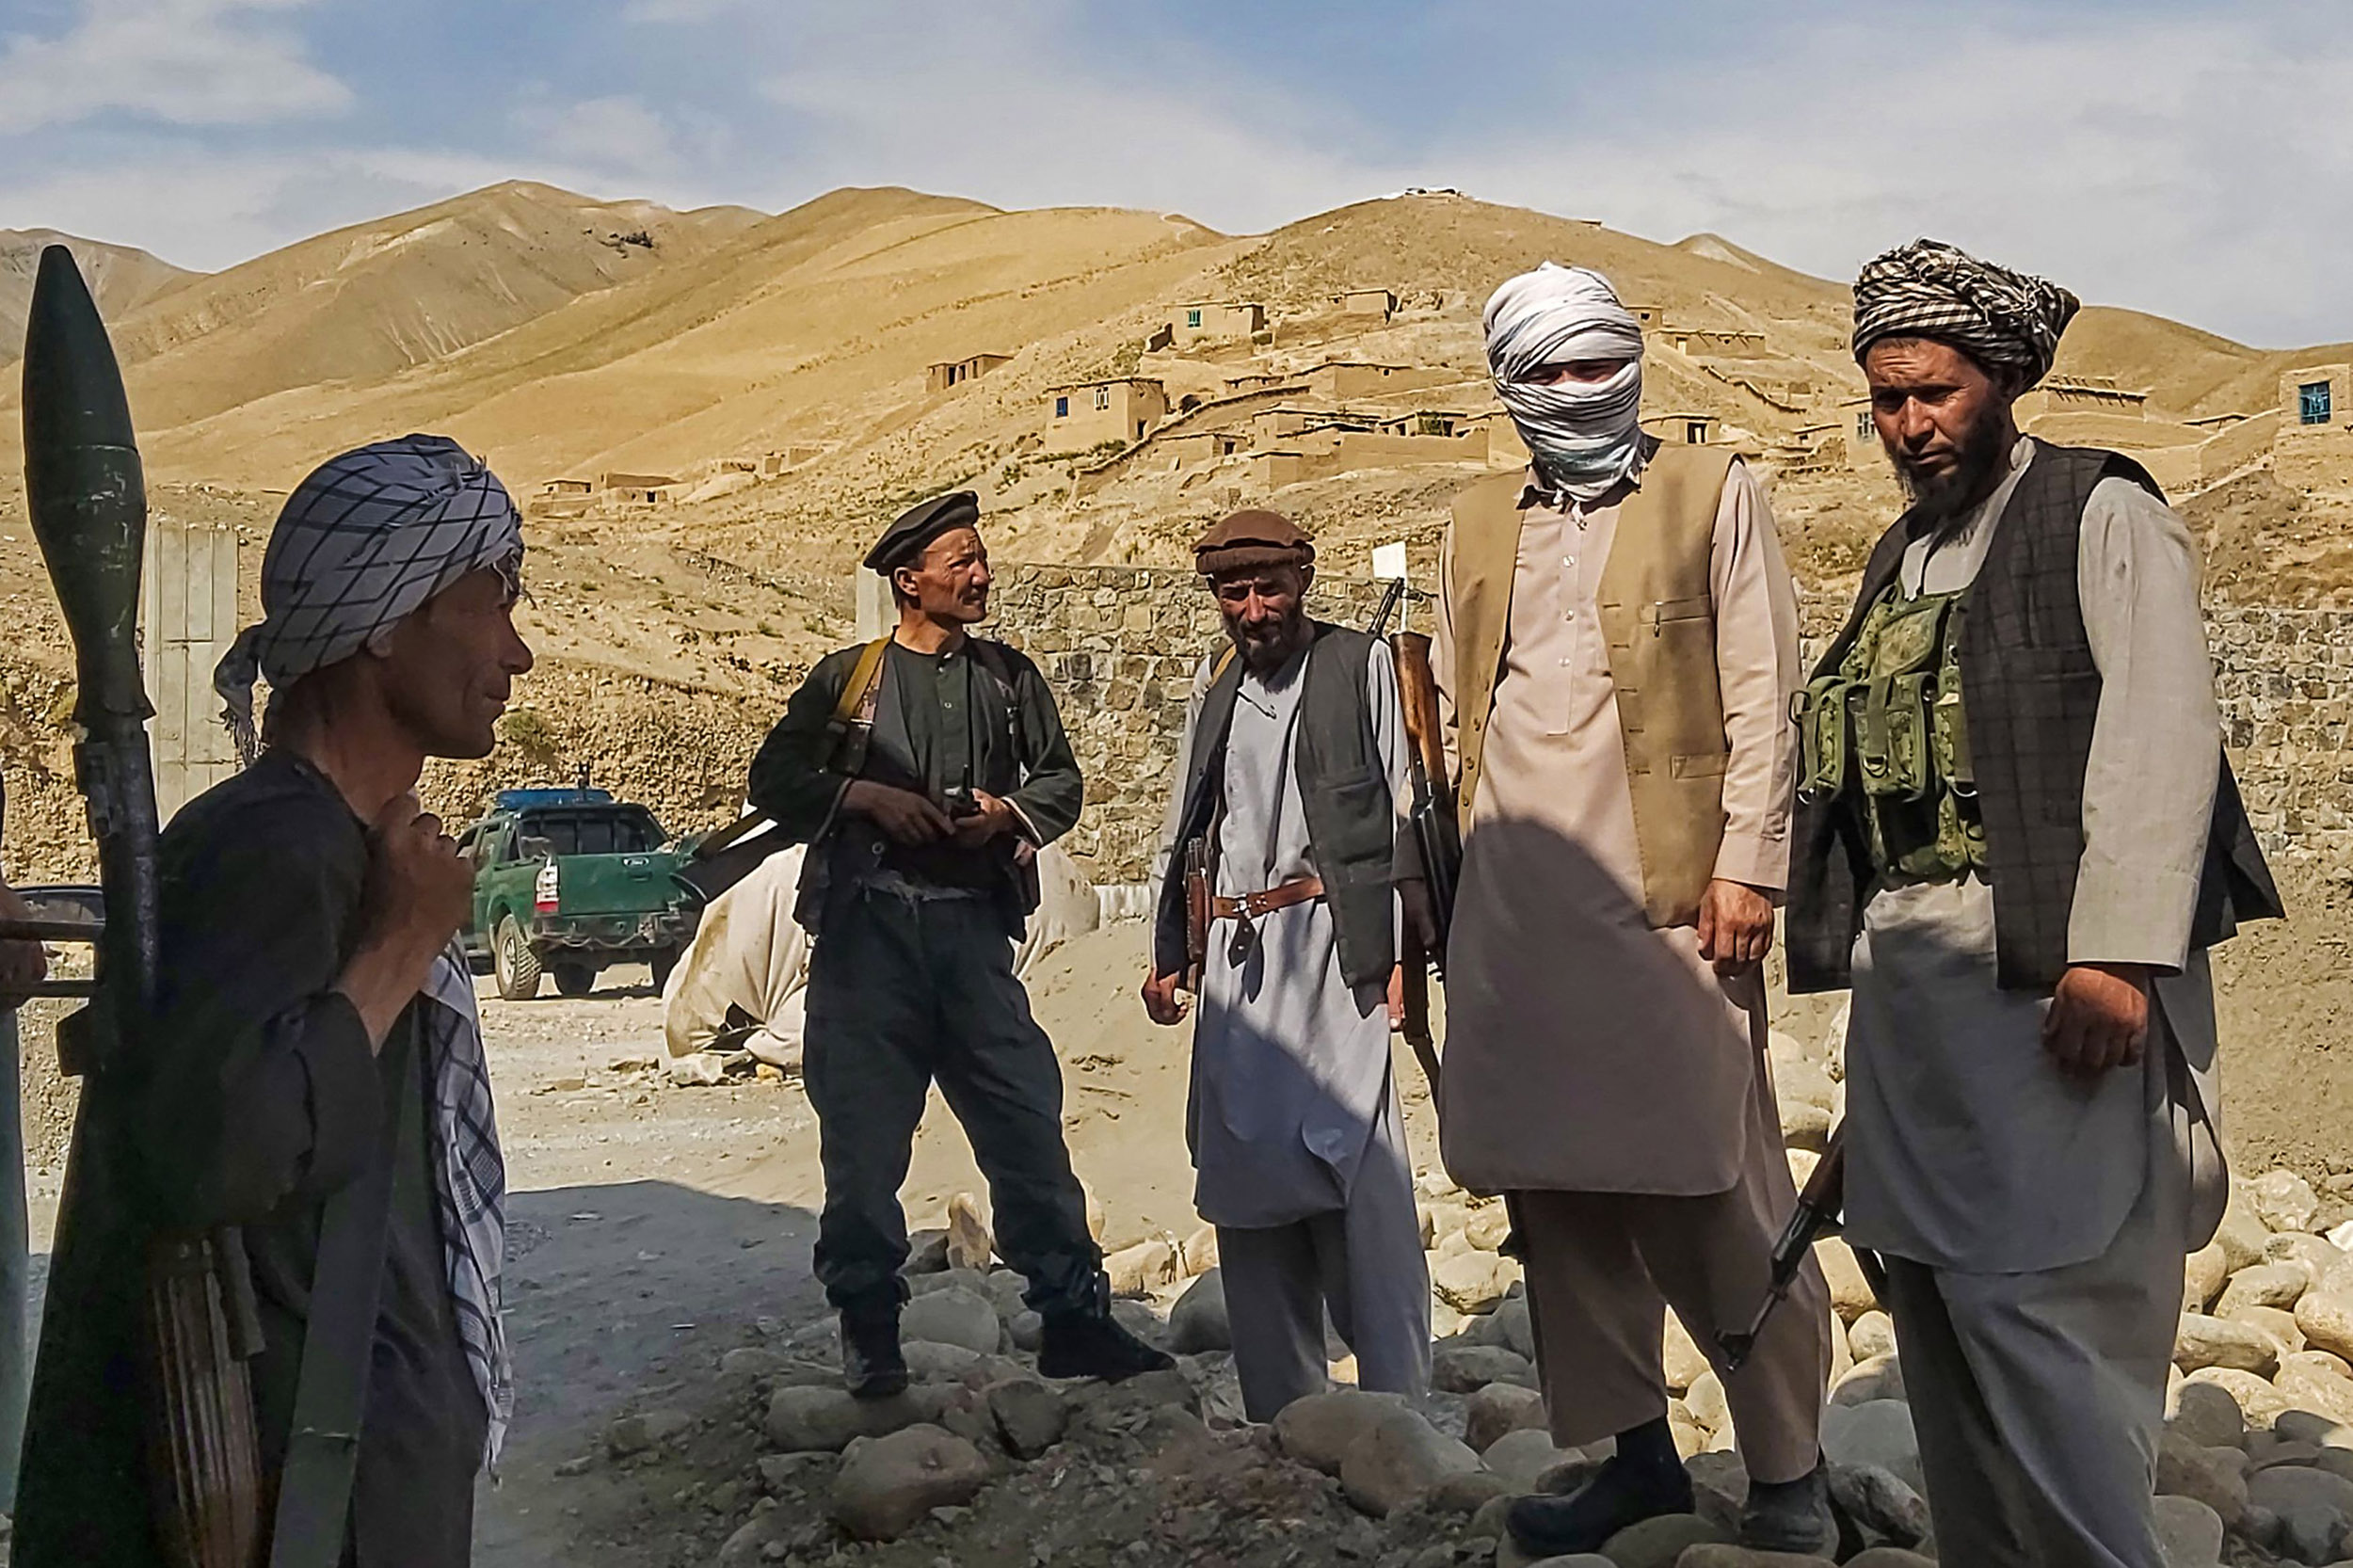 Taliban seizes cities across Afghanistan as U.S. forces exit